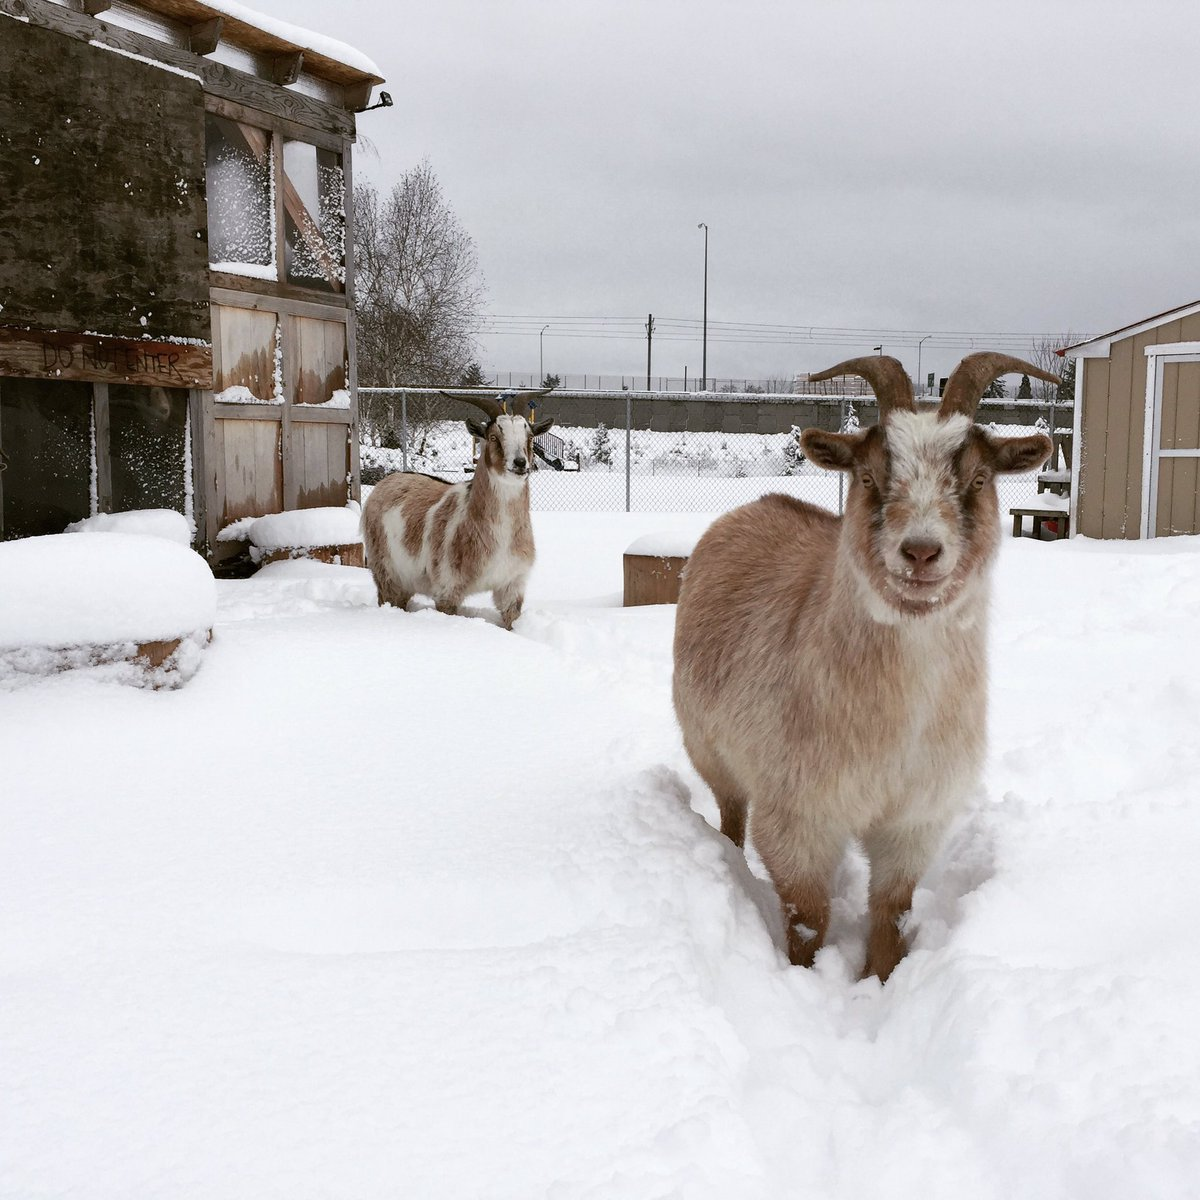 Venturing out in search of breakfast. #belmontgoats #goats #pdxtst #pdxsnow<br>http://pic.twitter.com/zUkYXELkOf &ndash; à The Belmont Goats